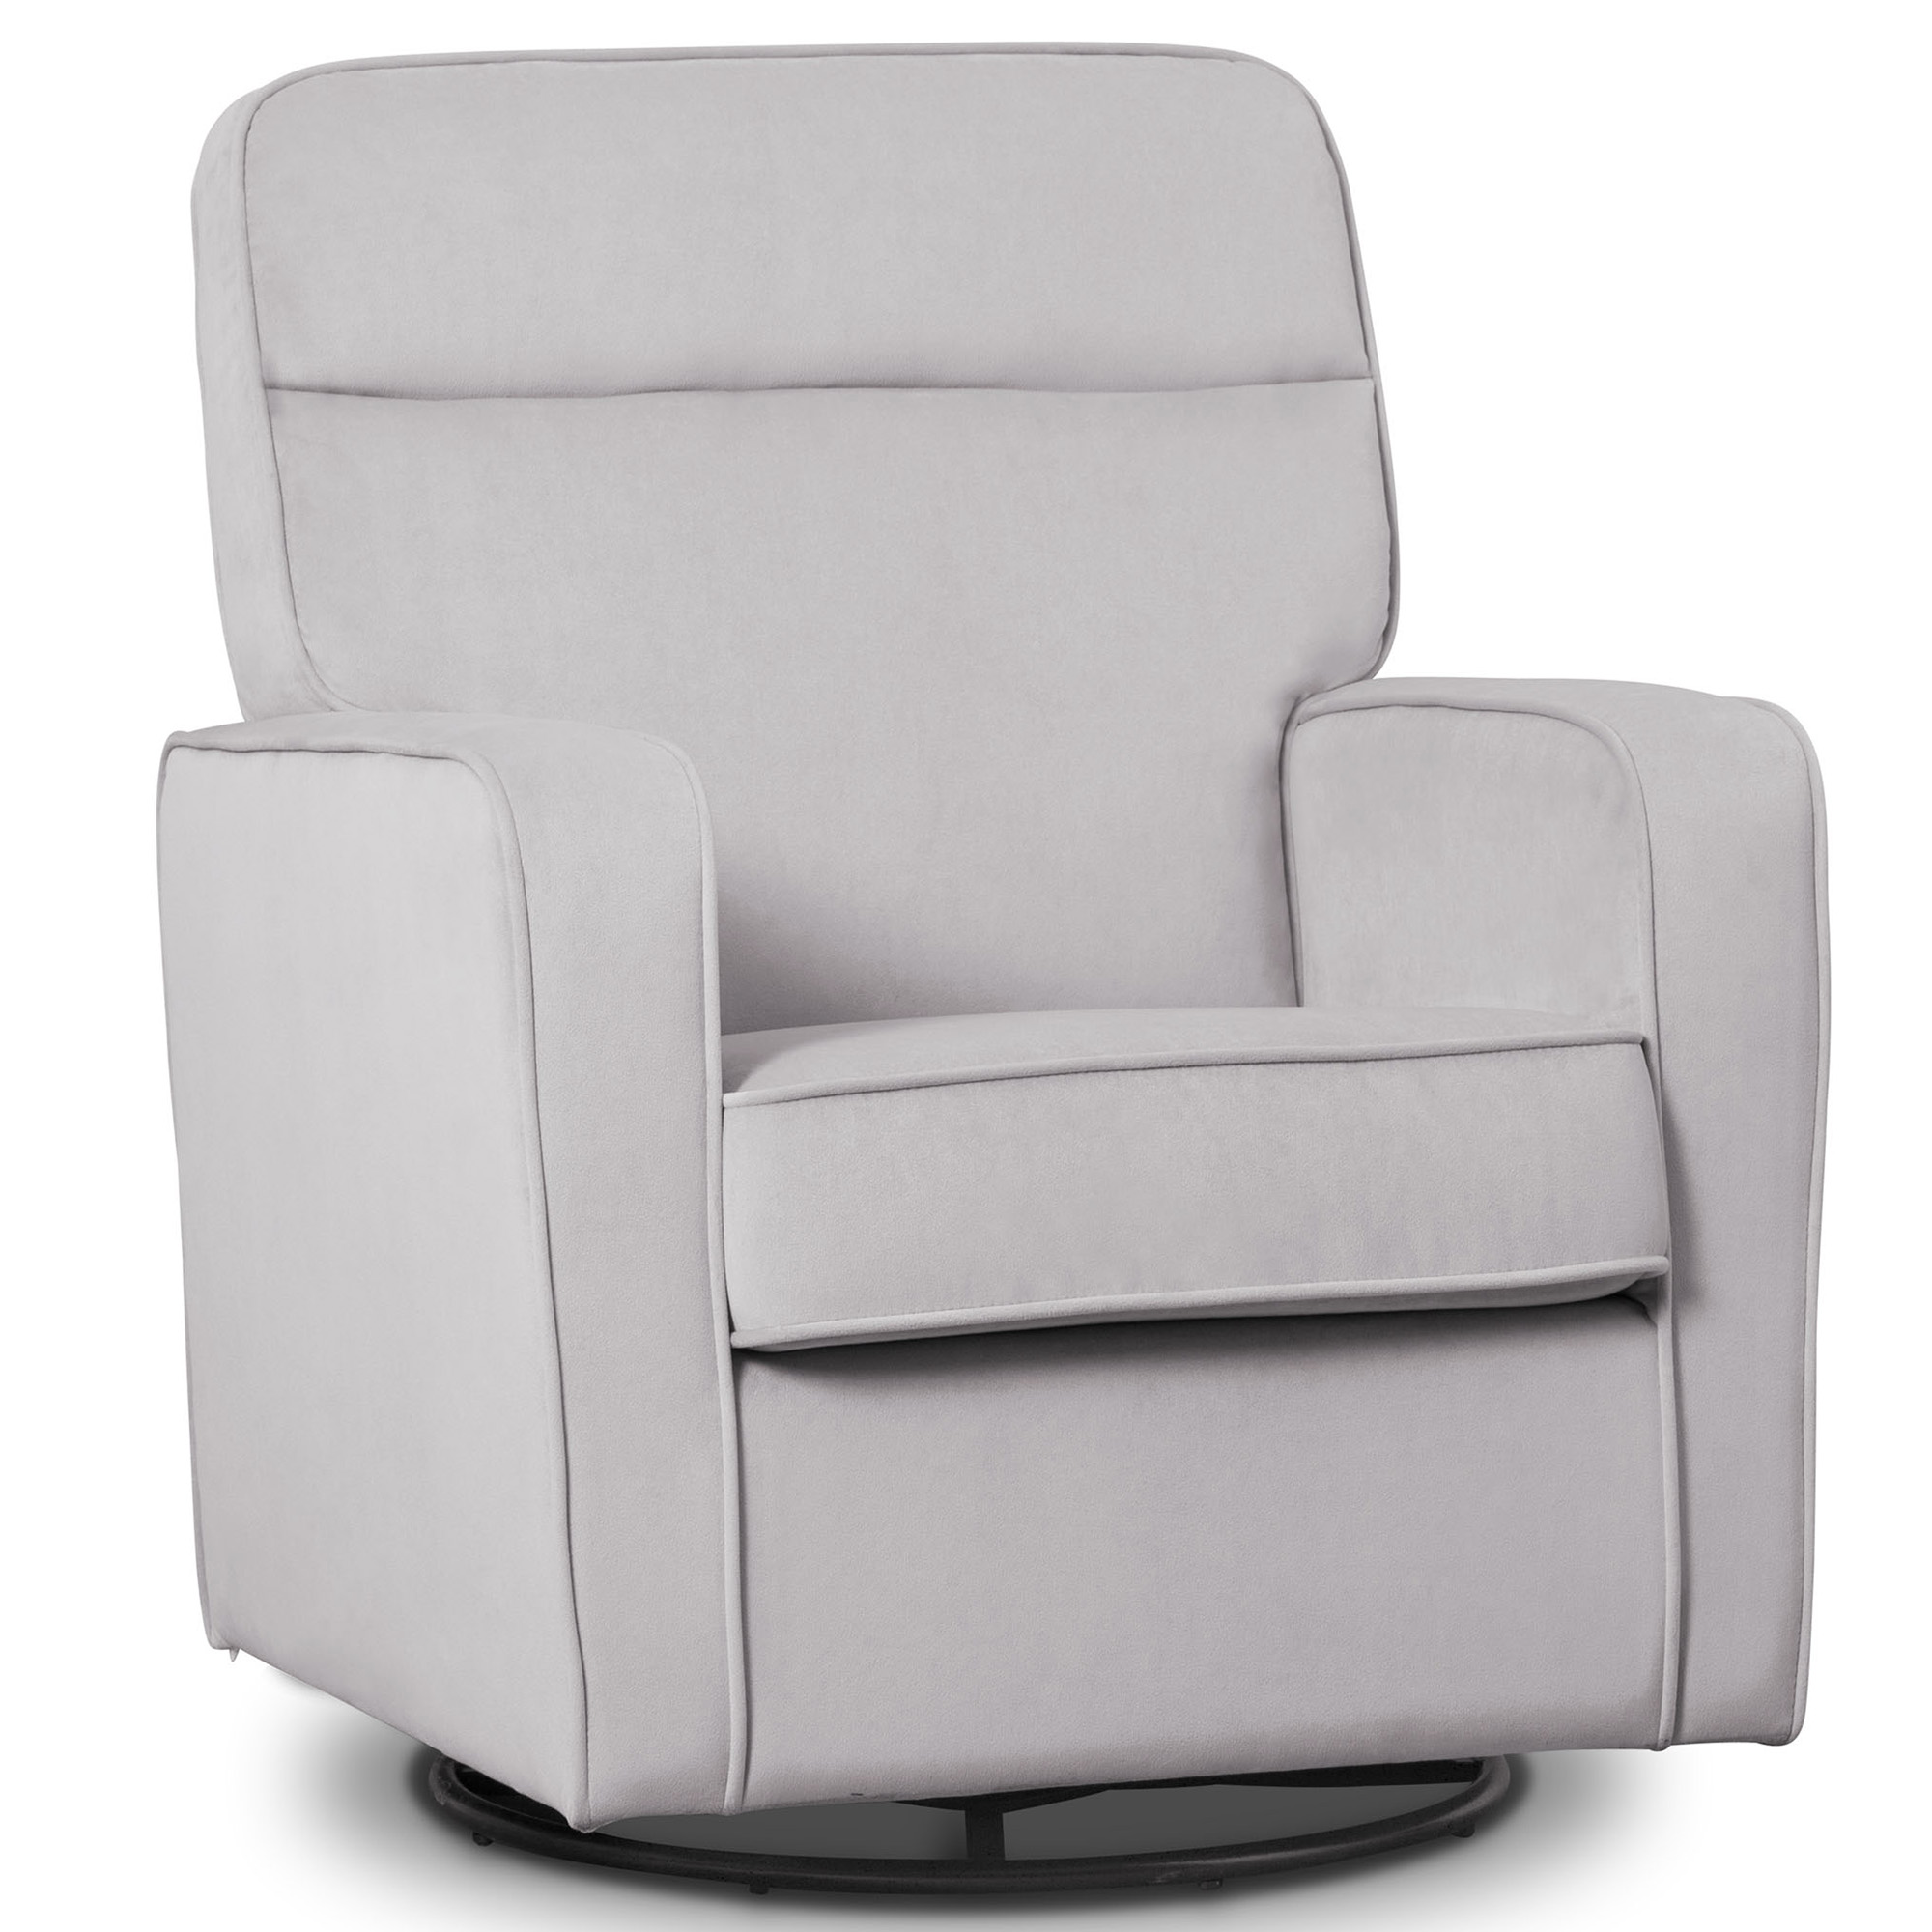 Delta Children Willow Nursery Glider Swivel Rocker Chair Featuring LiveSmart Fabric by Culp, Linen